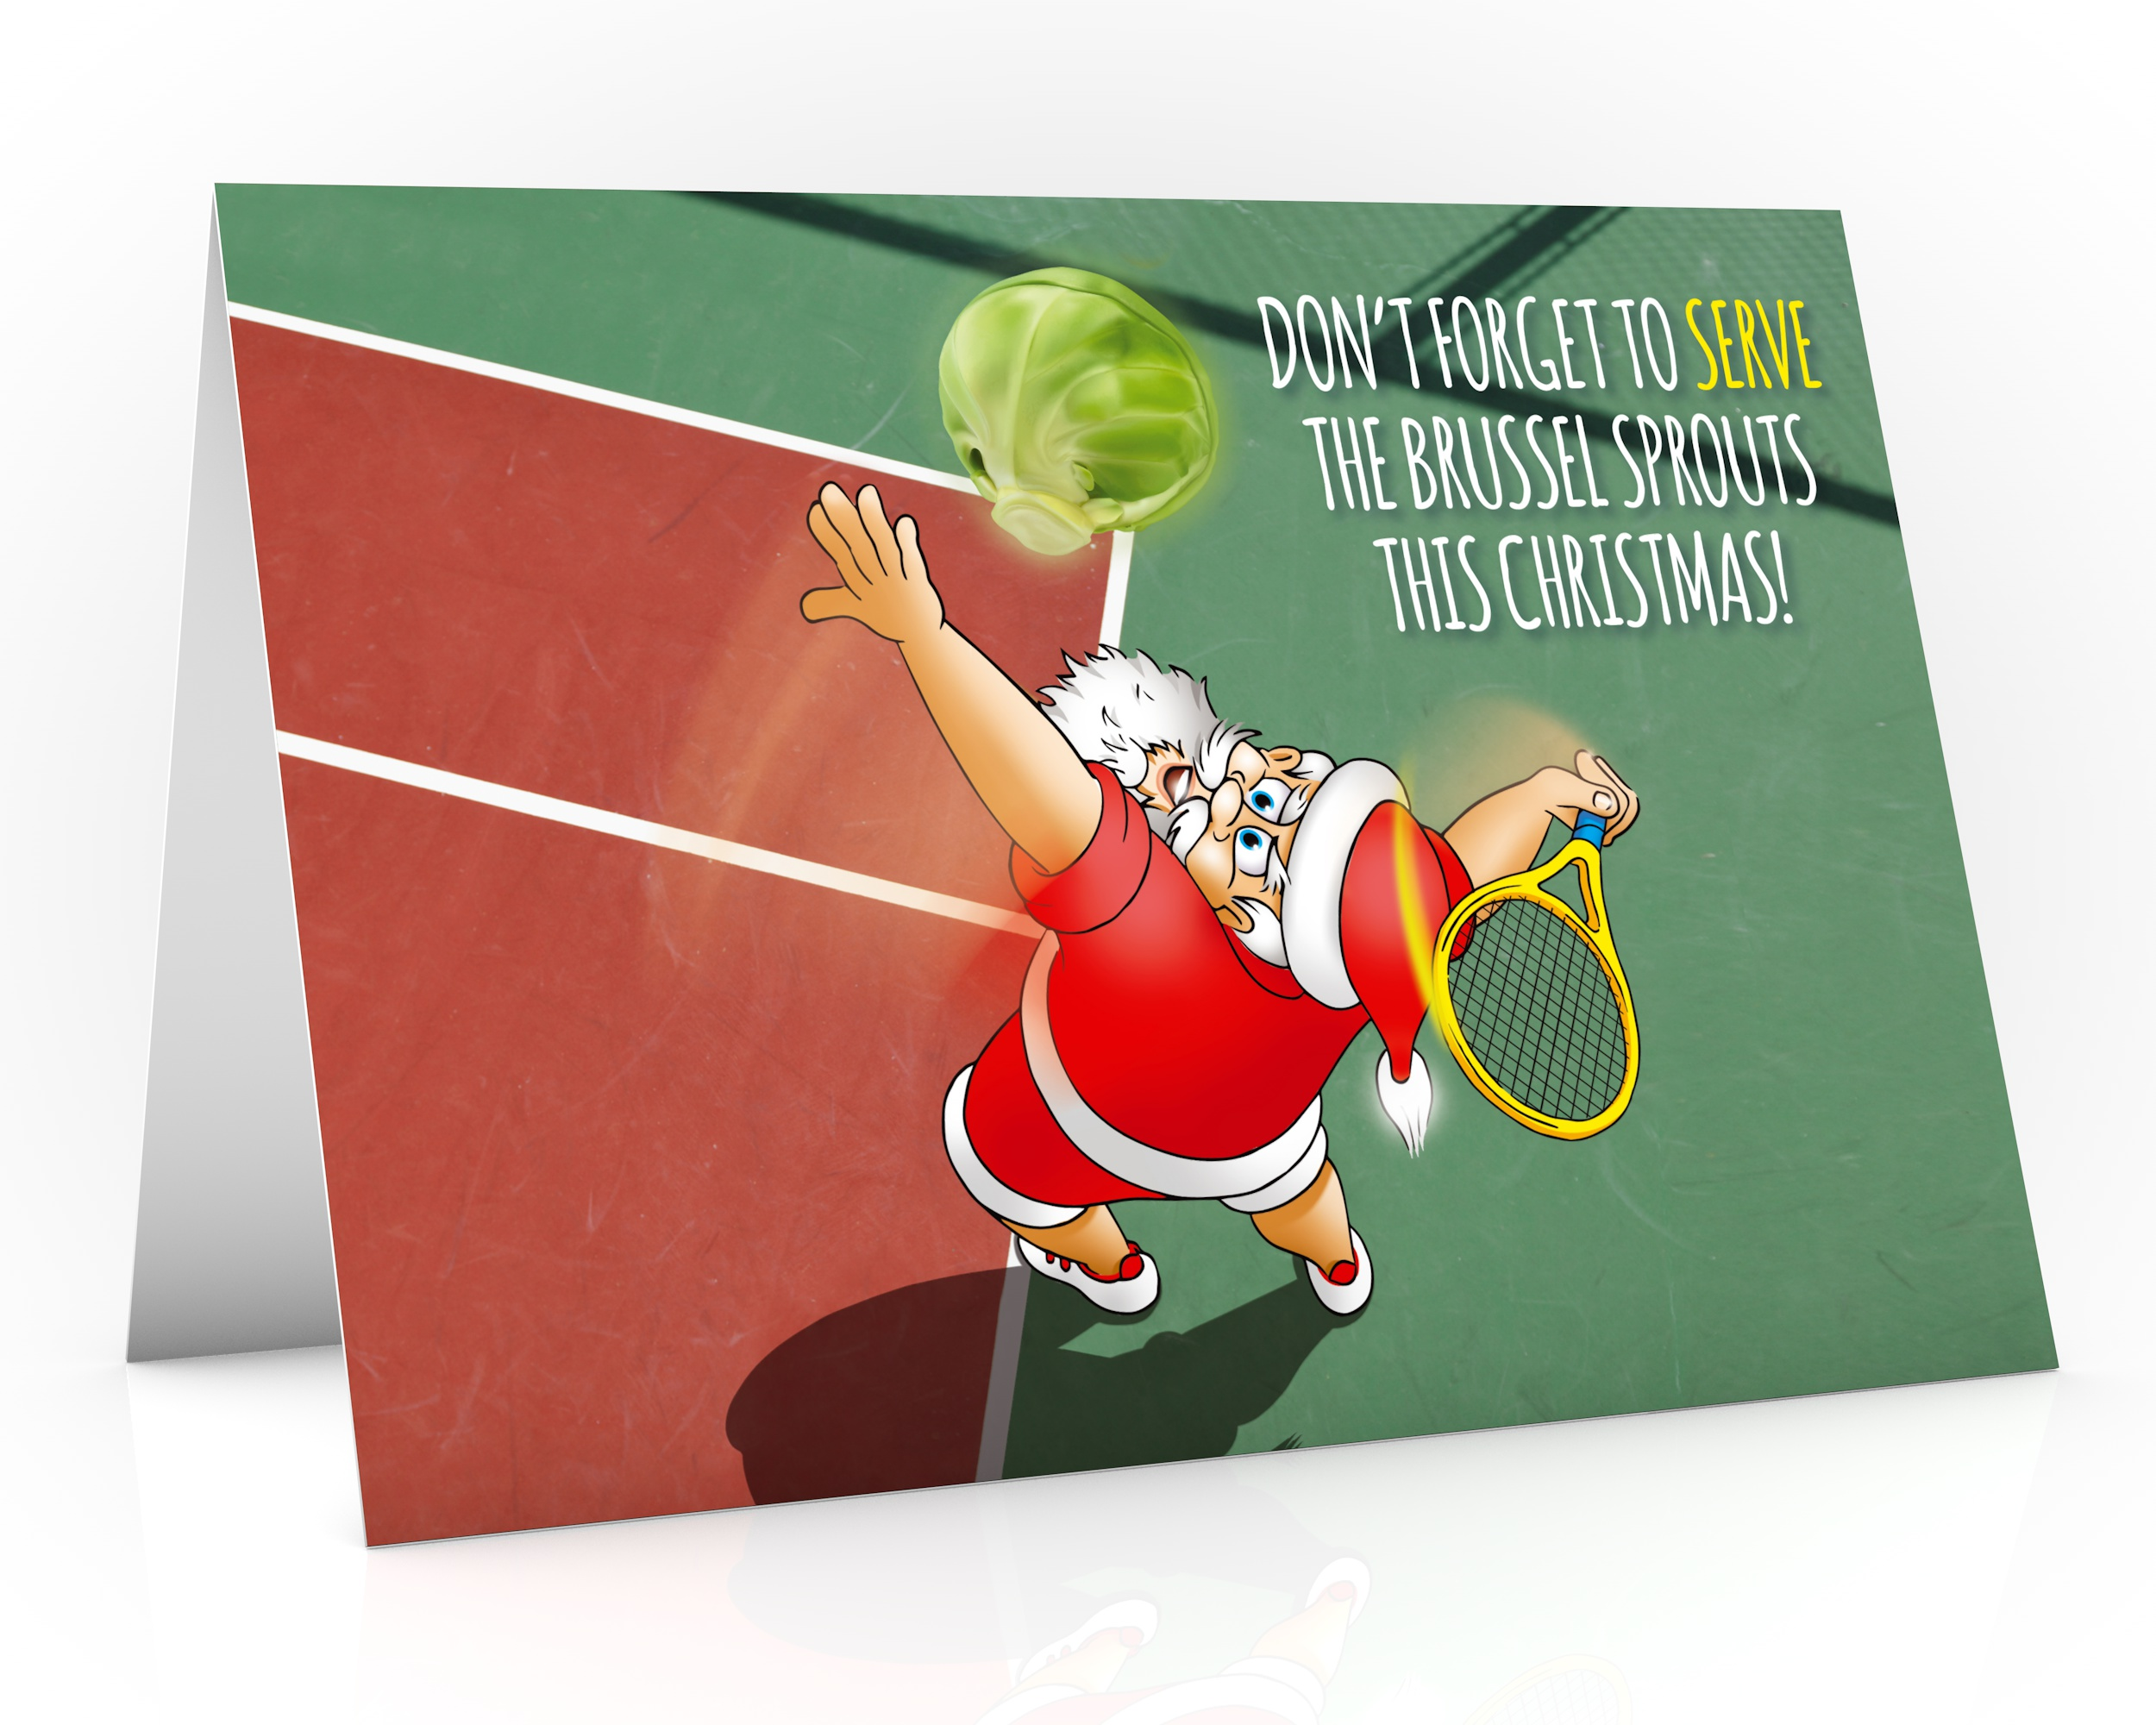 tennis christmas card with santa serving a brussel sprout